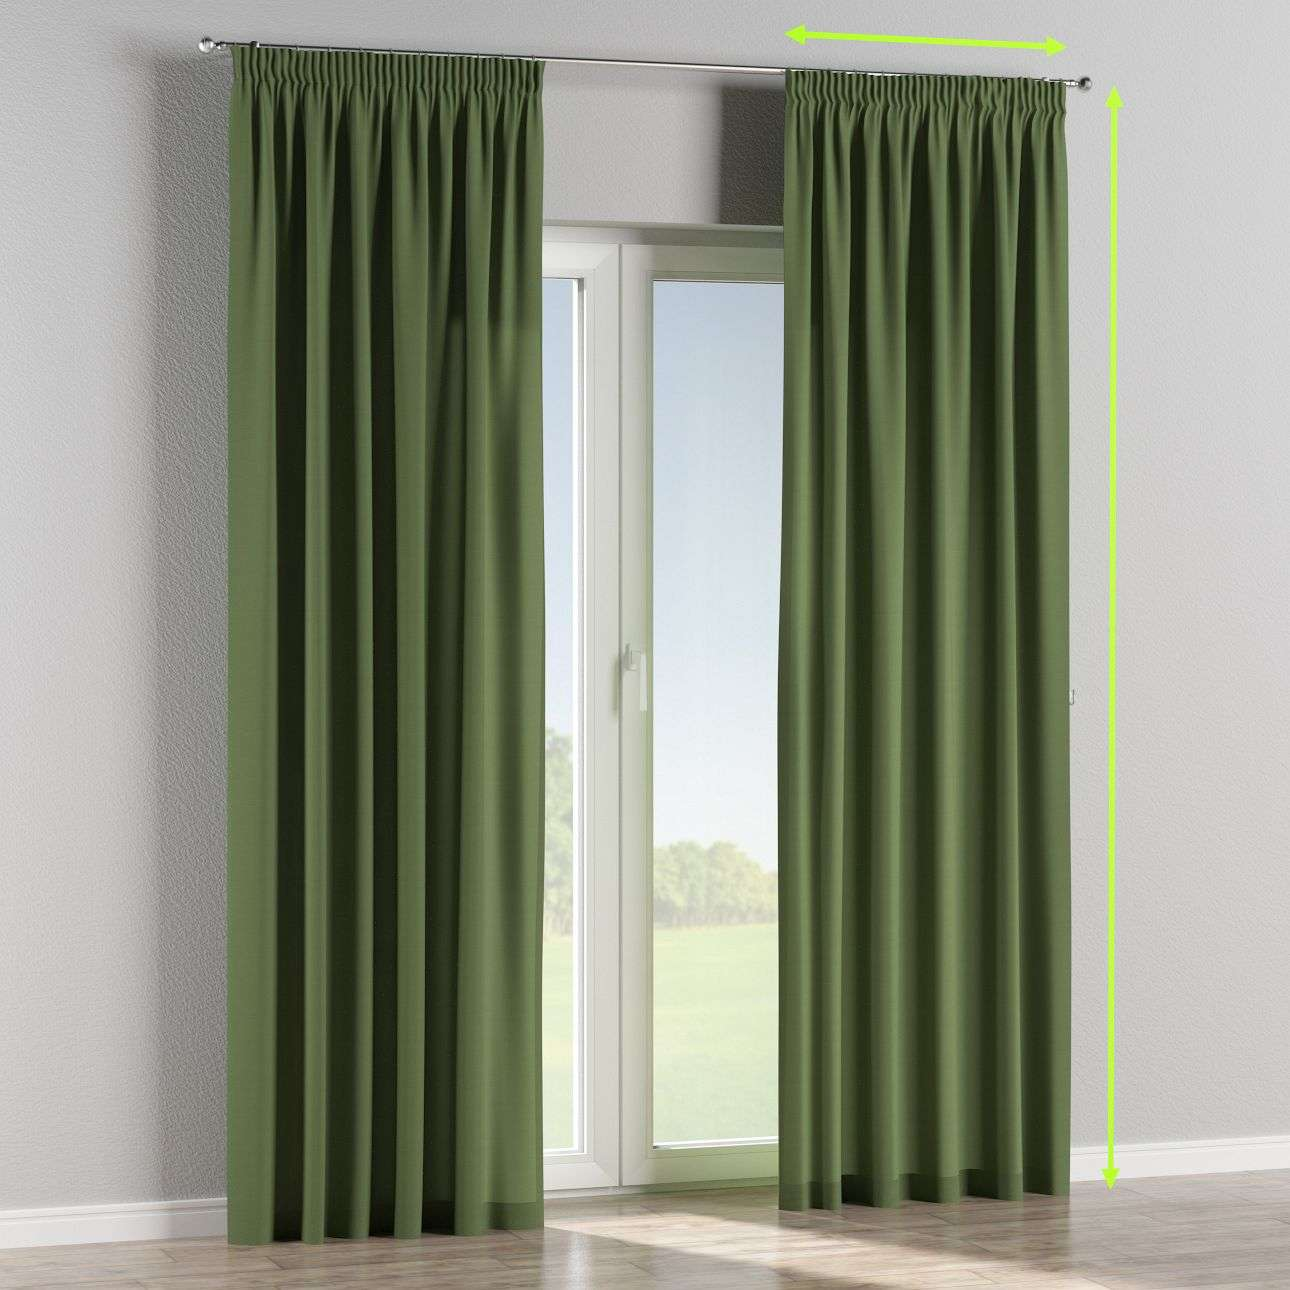 Pencil pleat lined curtains in collection Cotton Panama, fabric: 702-06